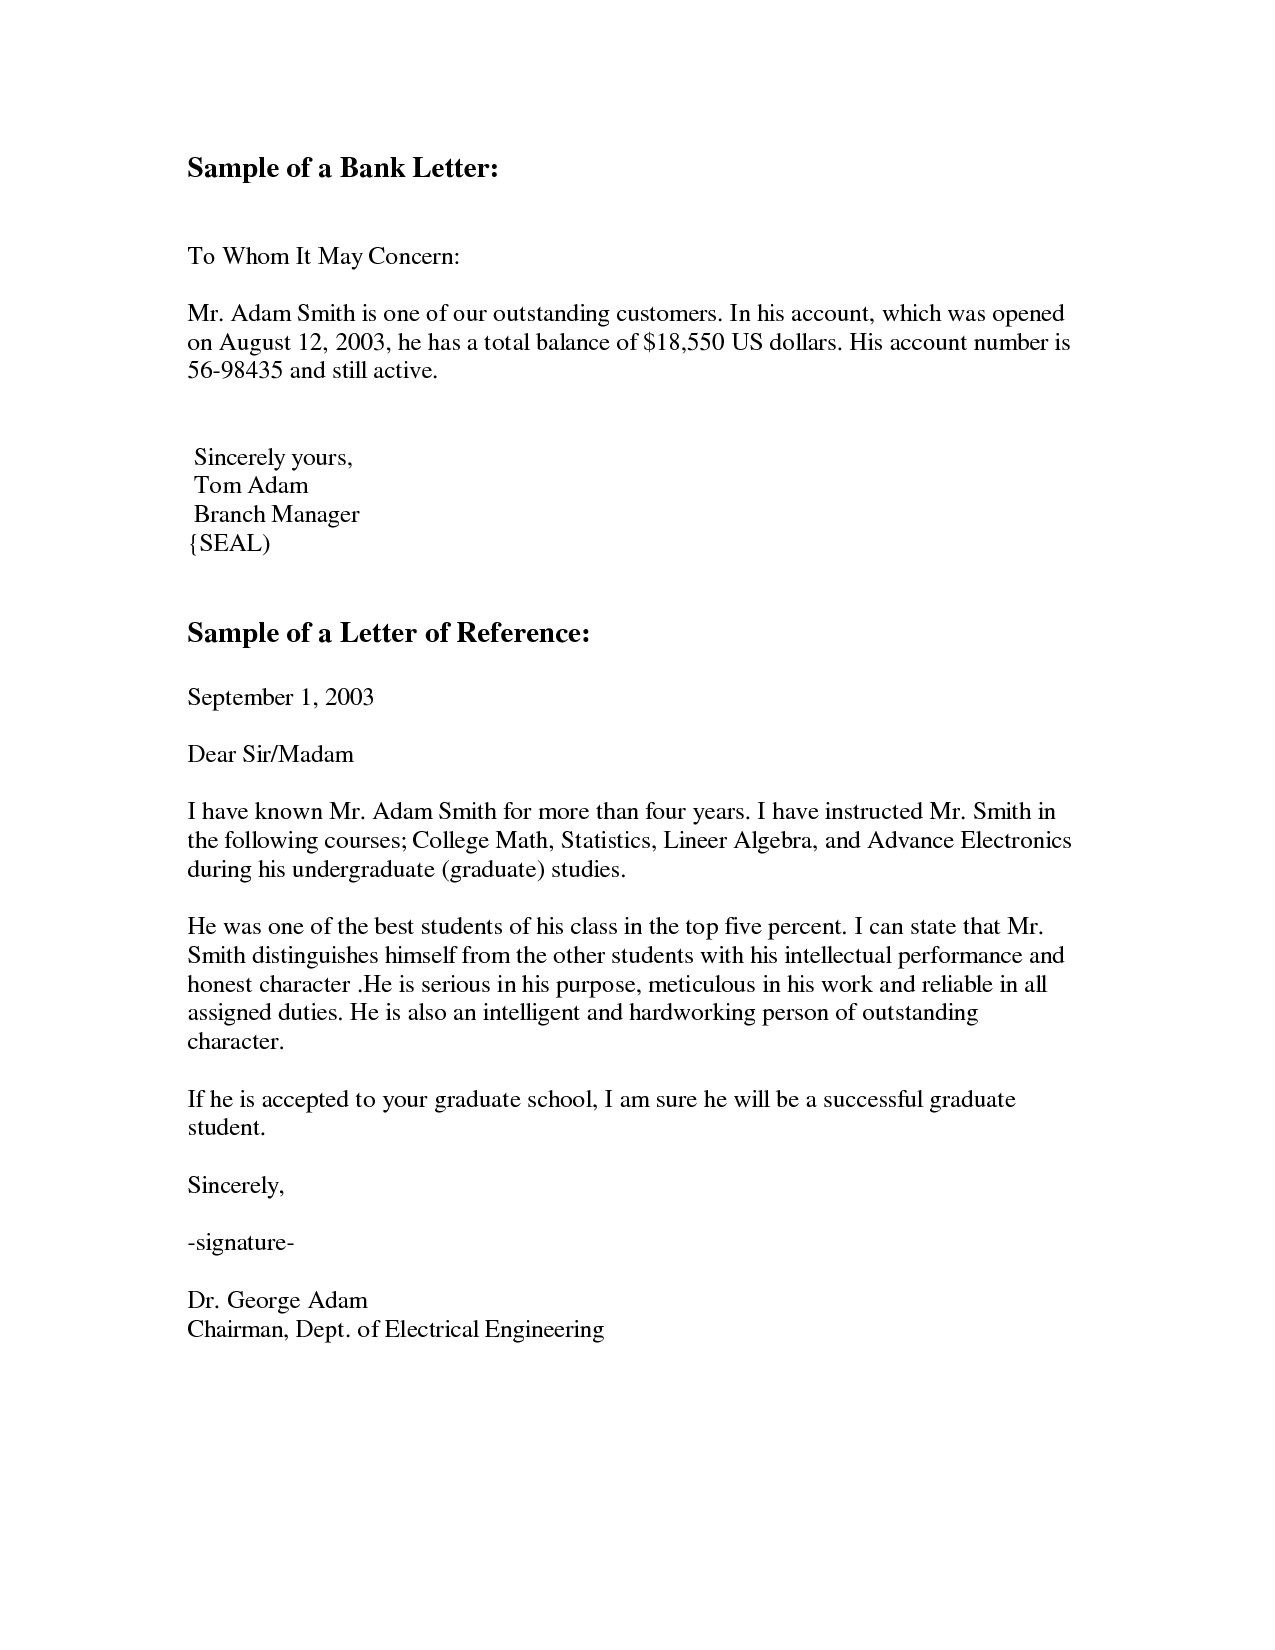 writing a formal letter template Collection-Formal Letter Template Unique bylaws Template 0d Wallpapers 50 ficial Letter format 4-b